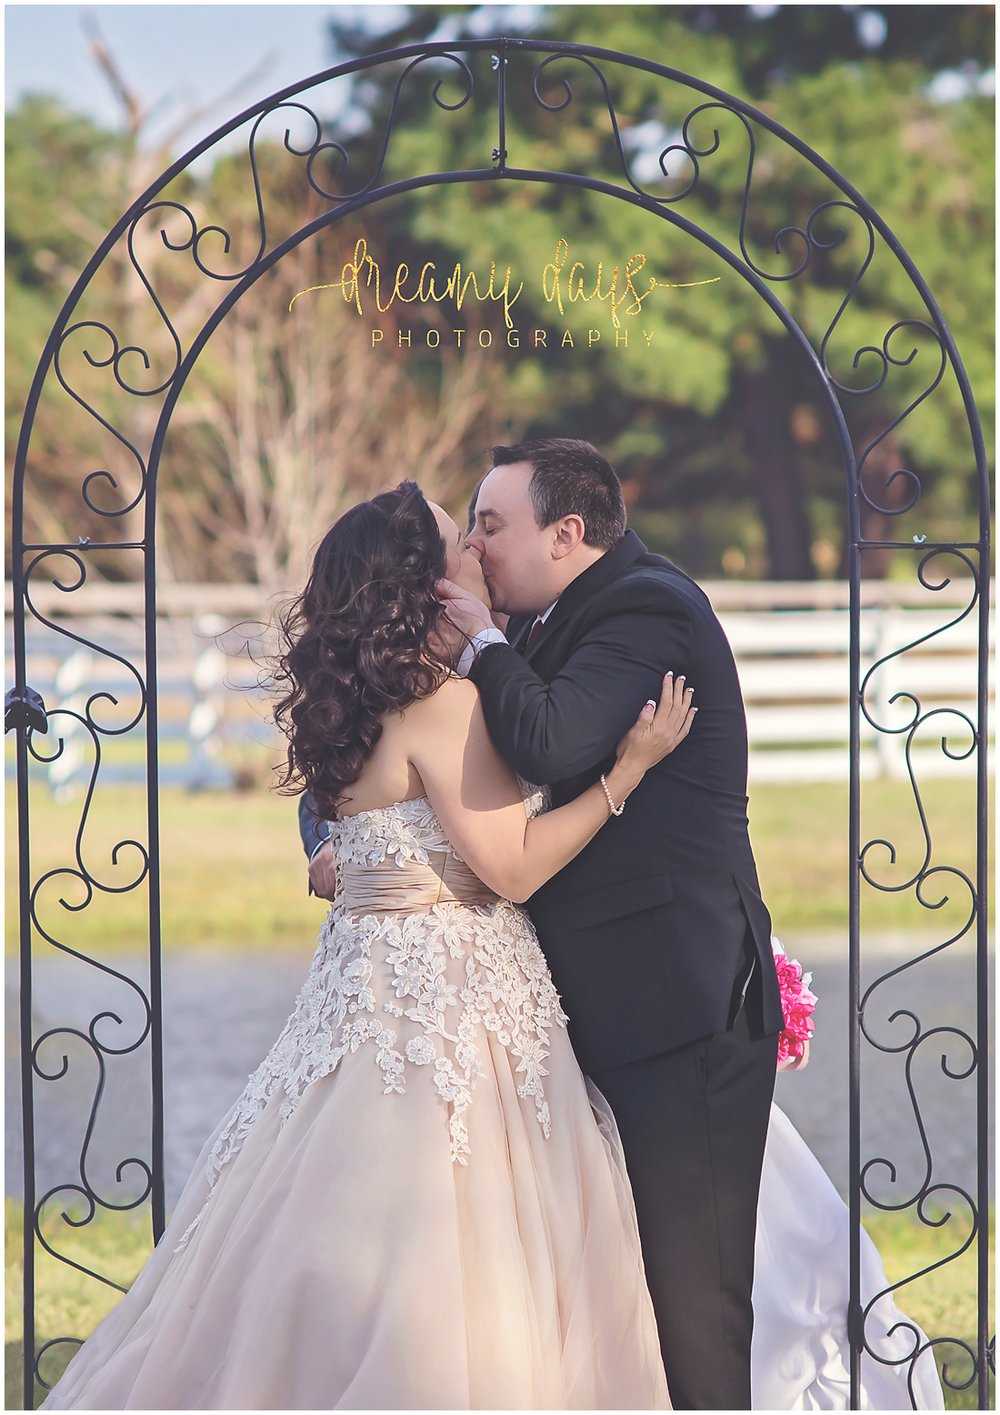 WML&J_Wedding 3-6-16 (842)FB.png